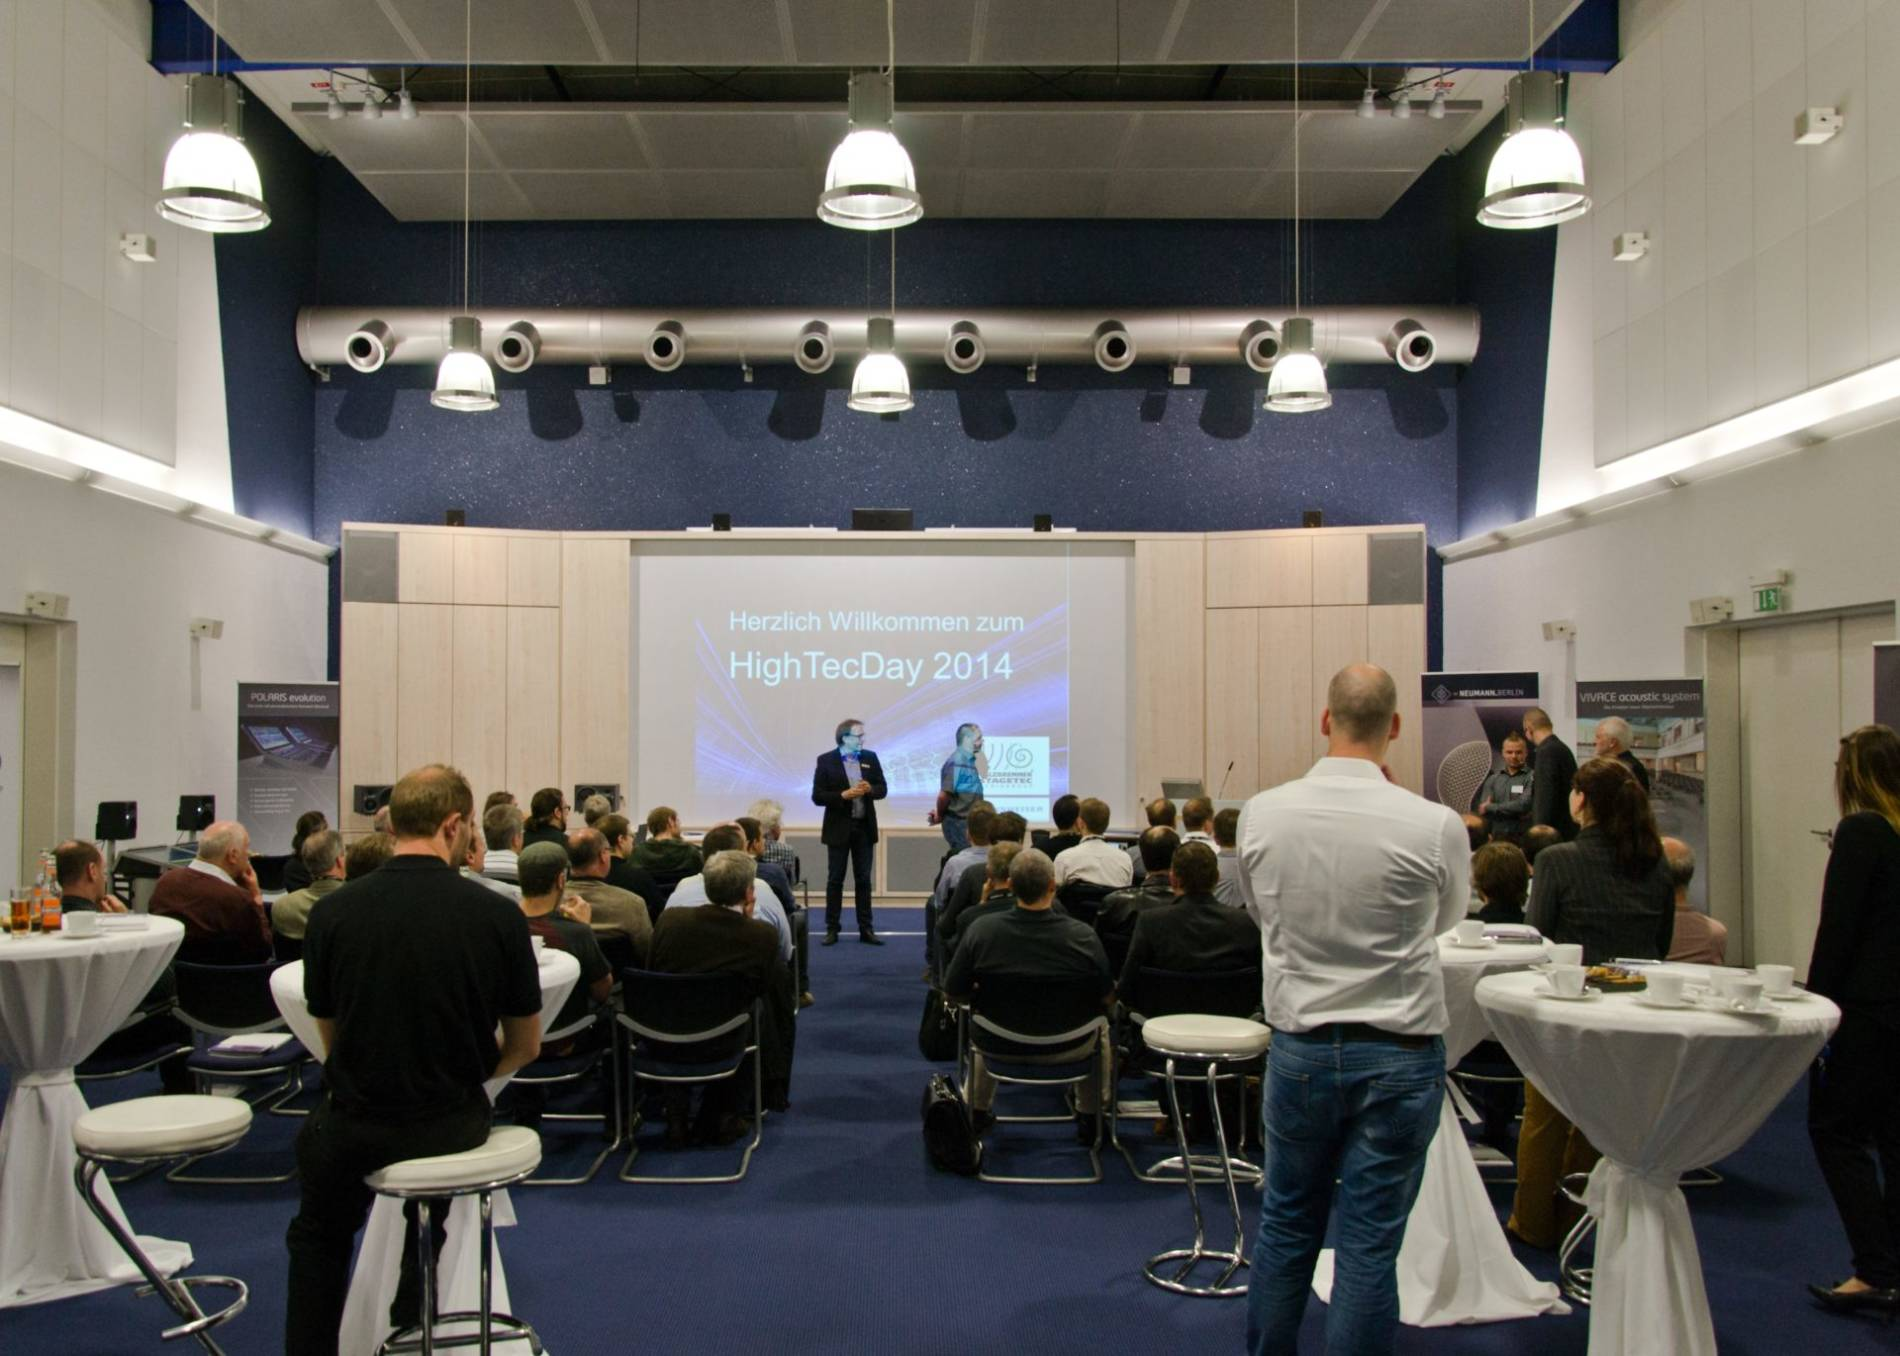 salzbrenner-media-hightecday-2014